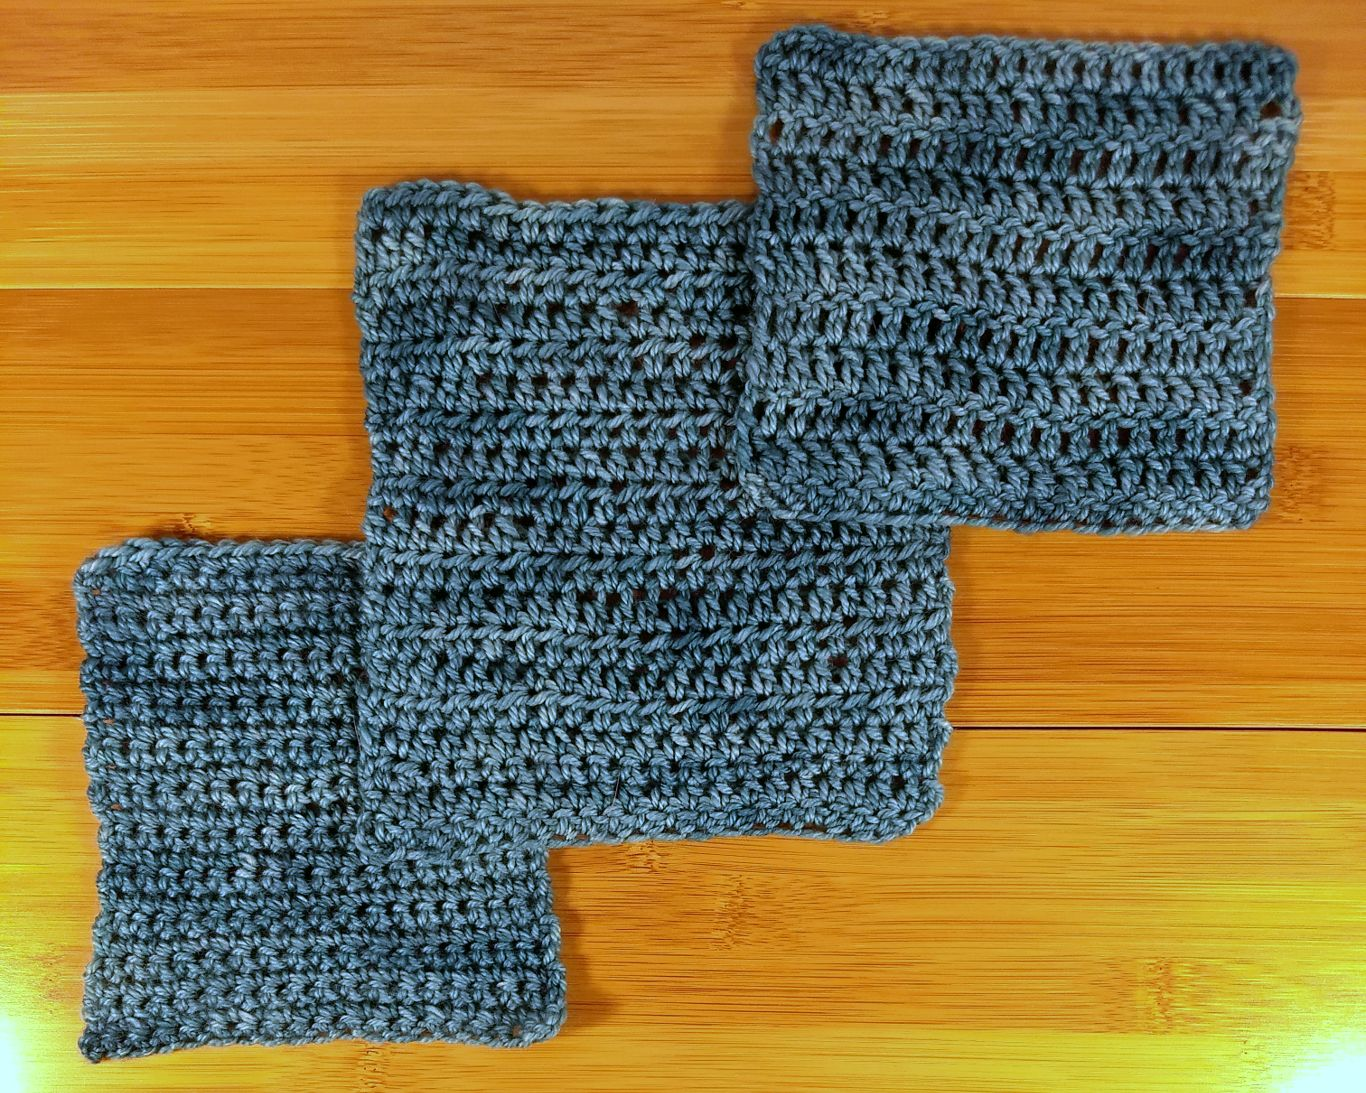 Crocheted Anzula Squishy swatches in SC, HDC, and DC.